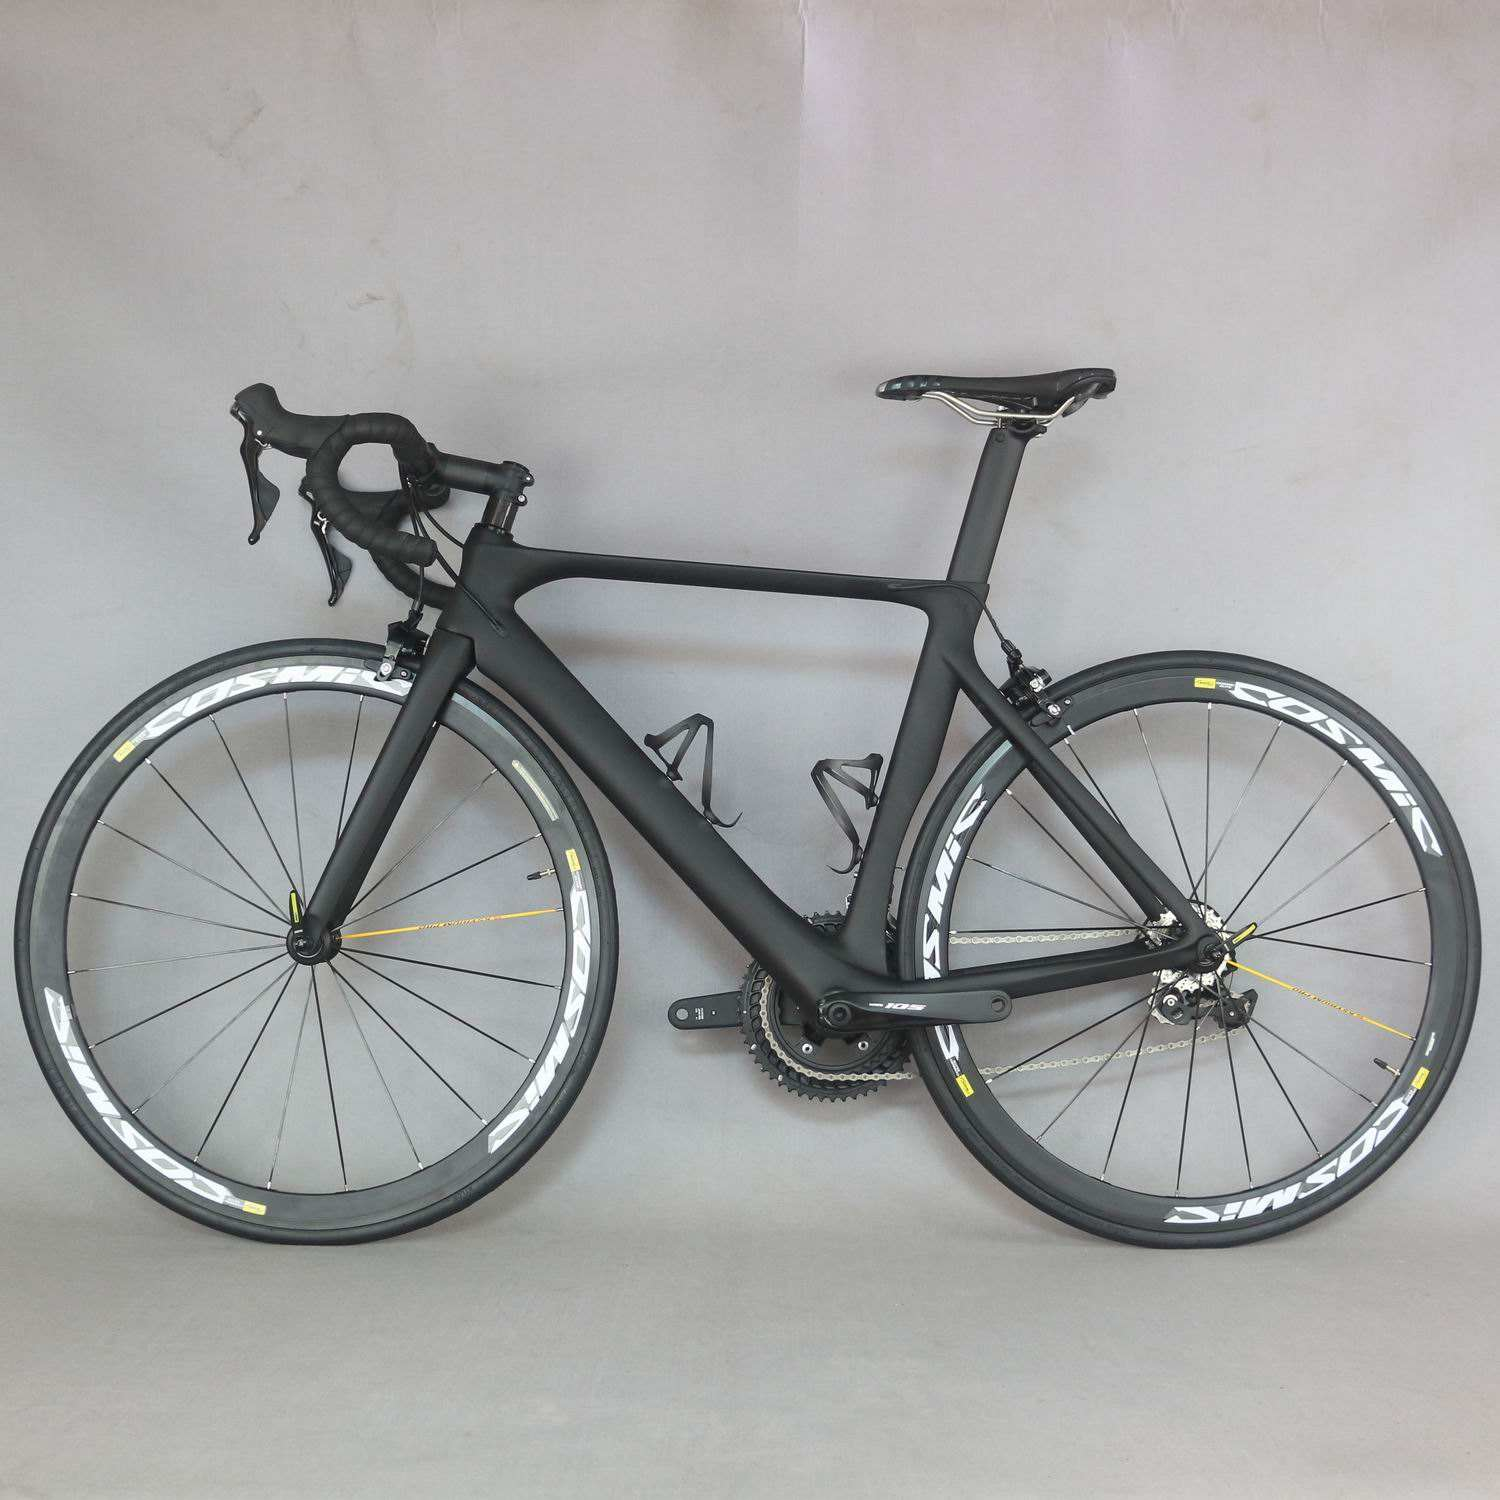 Carbon road bike FM286 Aero design frame complete carbon cycling 22 speed with Shimano R7000 groupset mavic wheels carbon bike